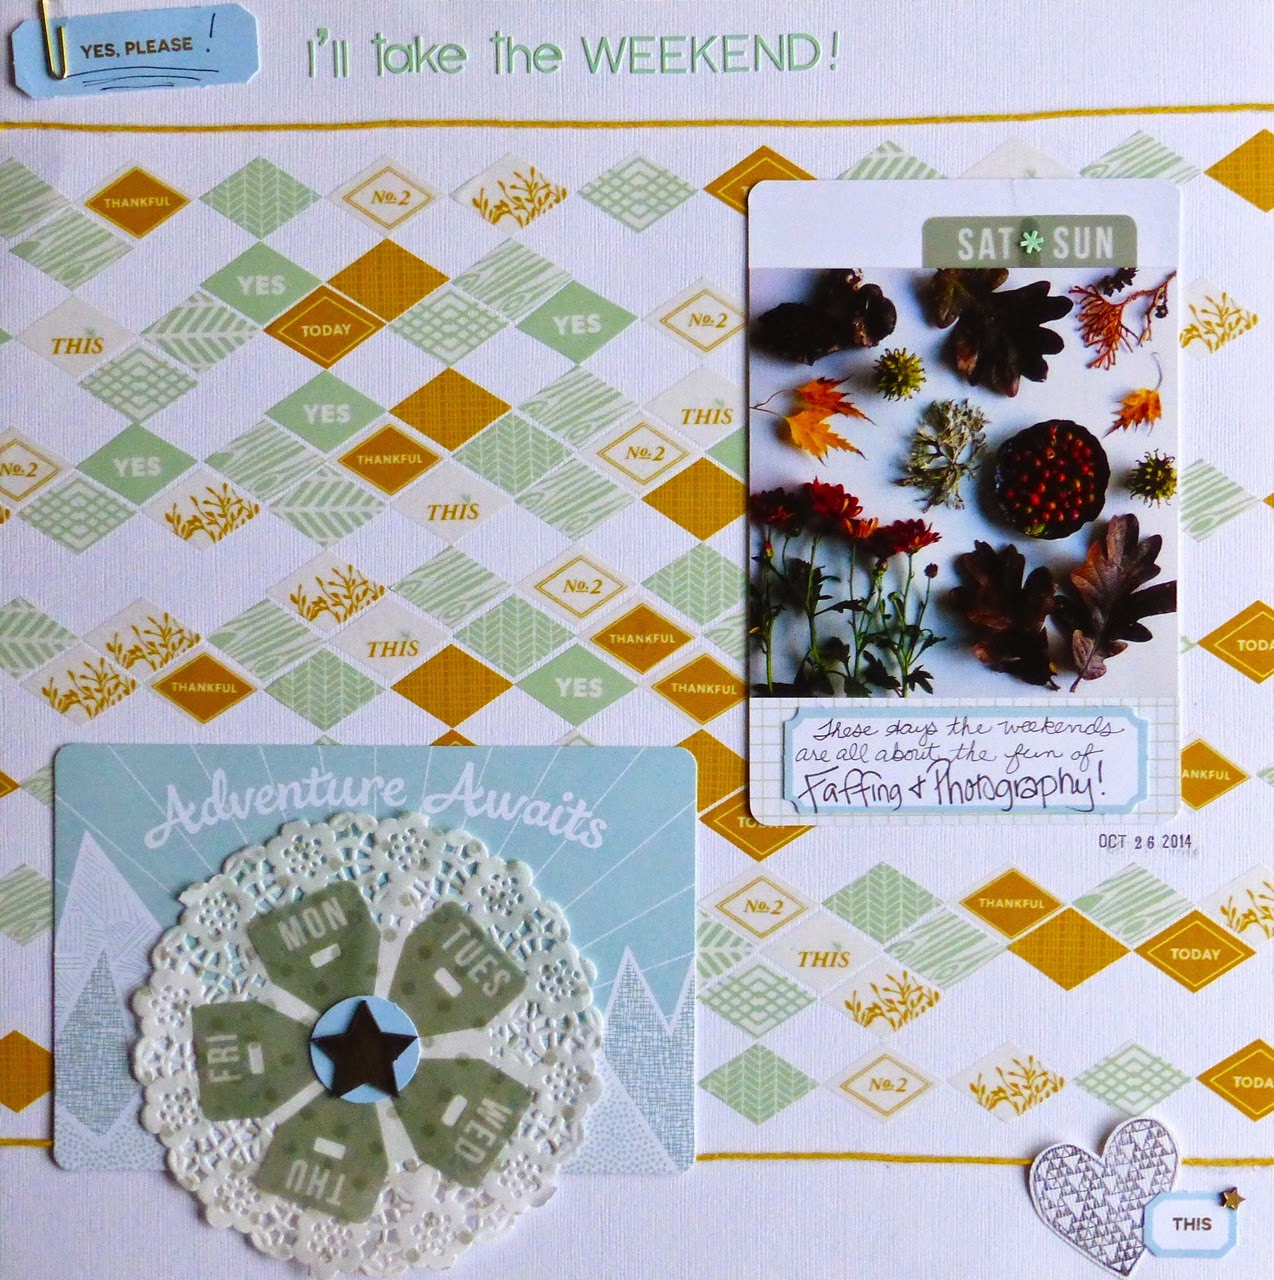 Studio Calico, Yes, Please I'll Take the Weekend!, journaling cards, faffing, photography, doily, Sun, Mon, Tues, Wed, Thu, Fri, Sat, Sun, heart stamp, this